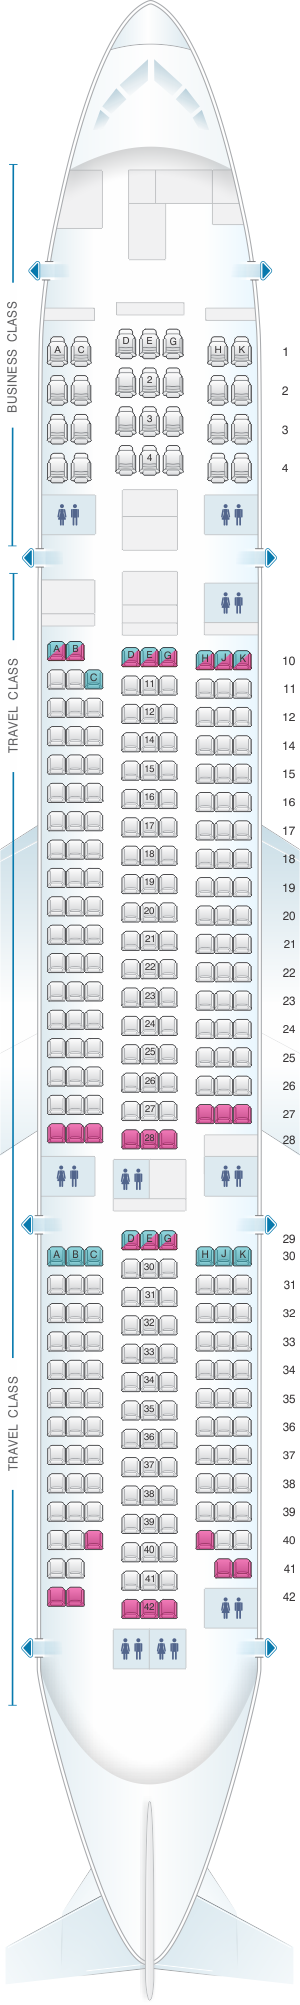 Seat map for Asiana Airlines Boeing B777 200ER 300PAX V1